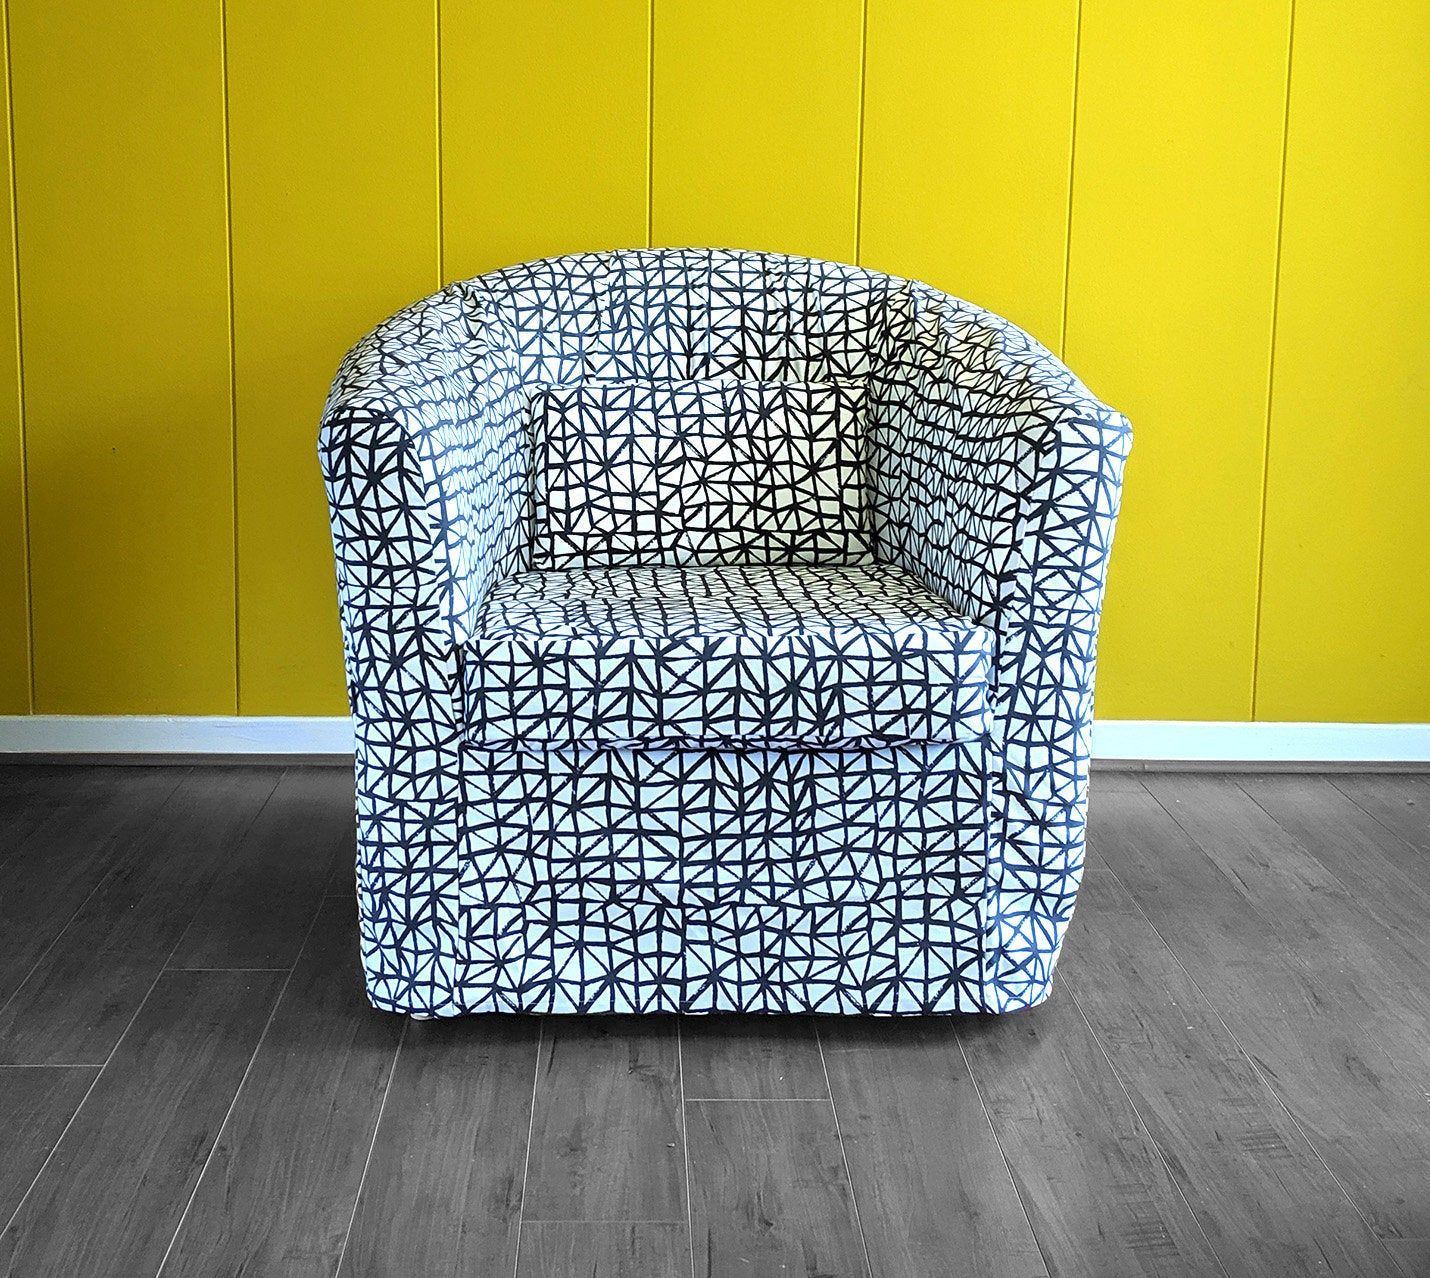 Cool Ikea Chair Slip Cover Black Lattice Print For Tullsta Gmtry Best Dining Table And Chair Ideas Images Gmtryco